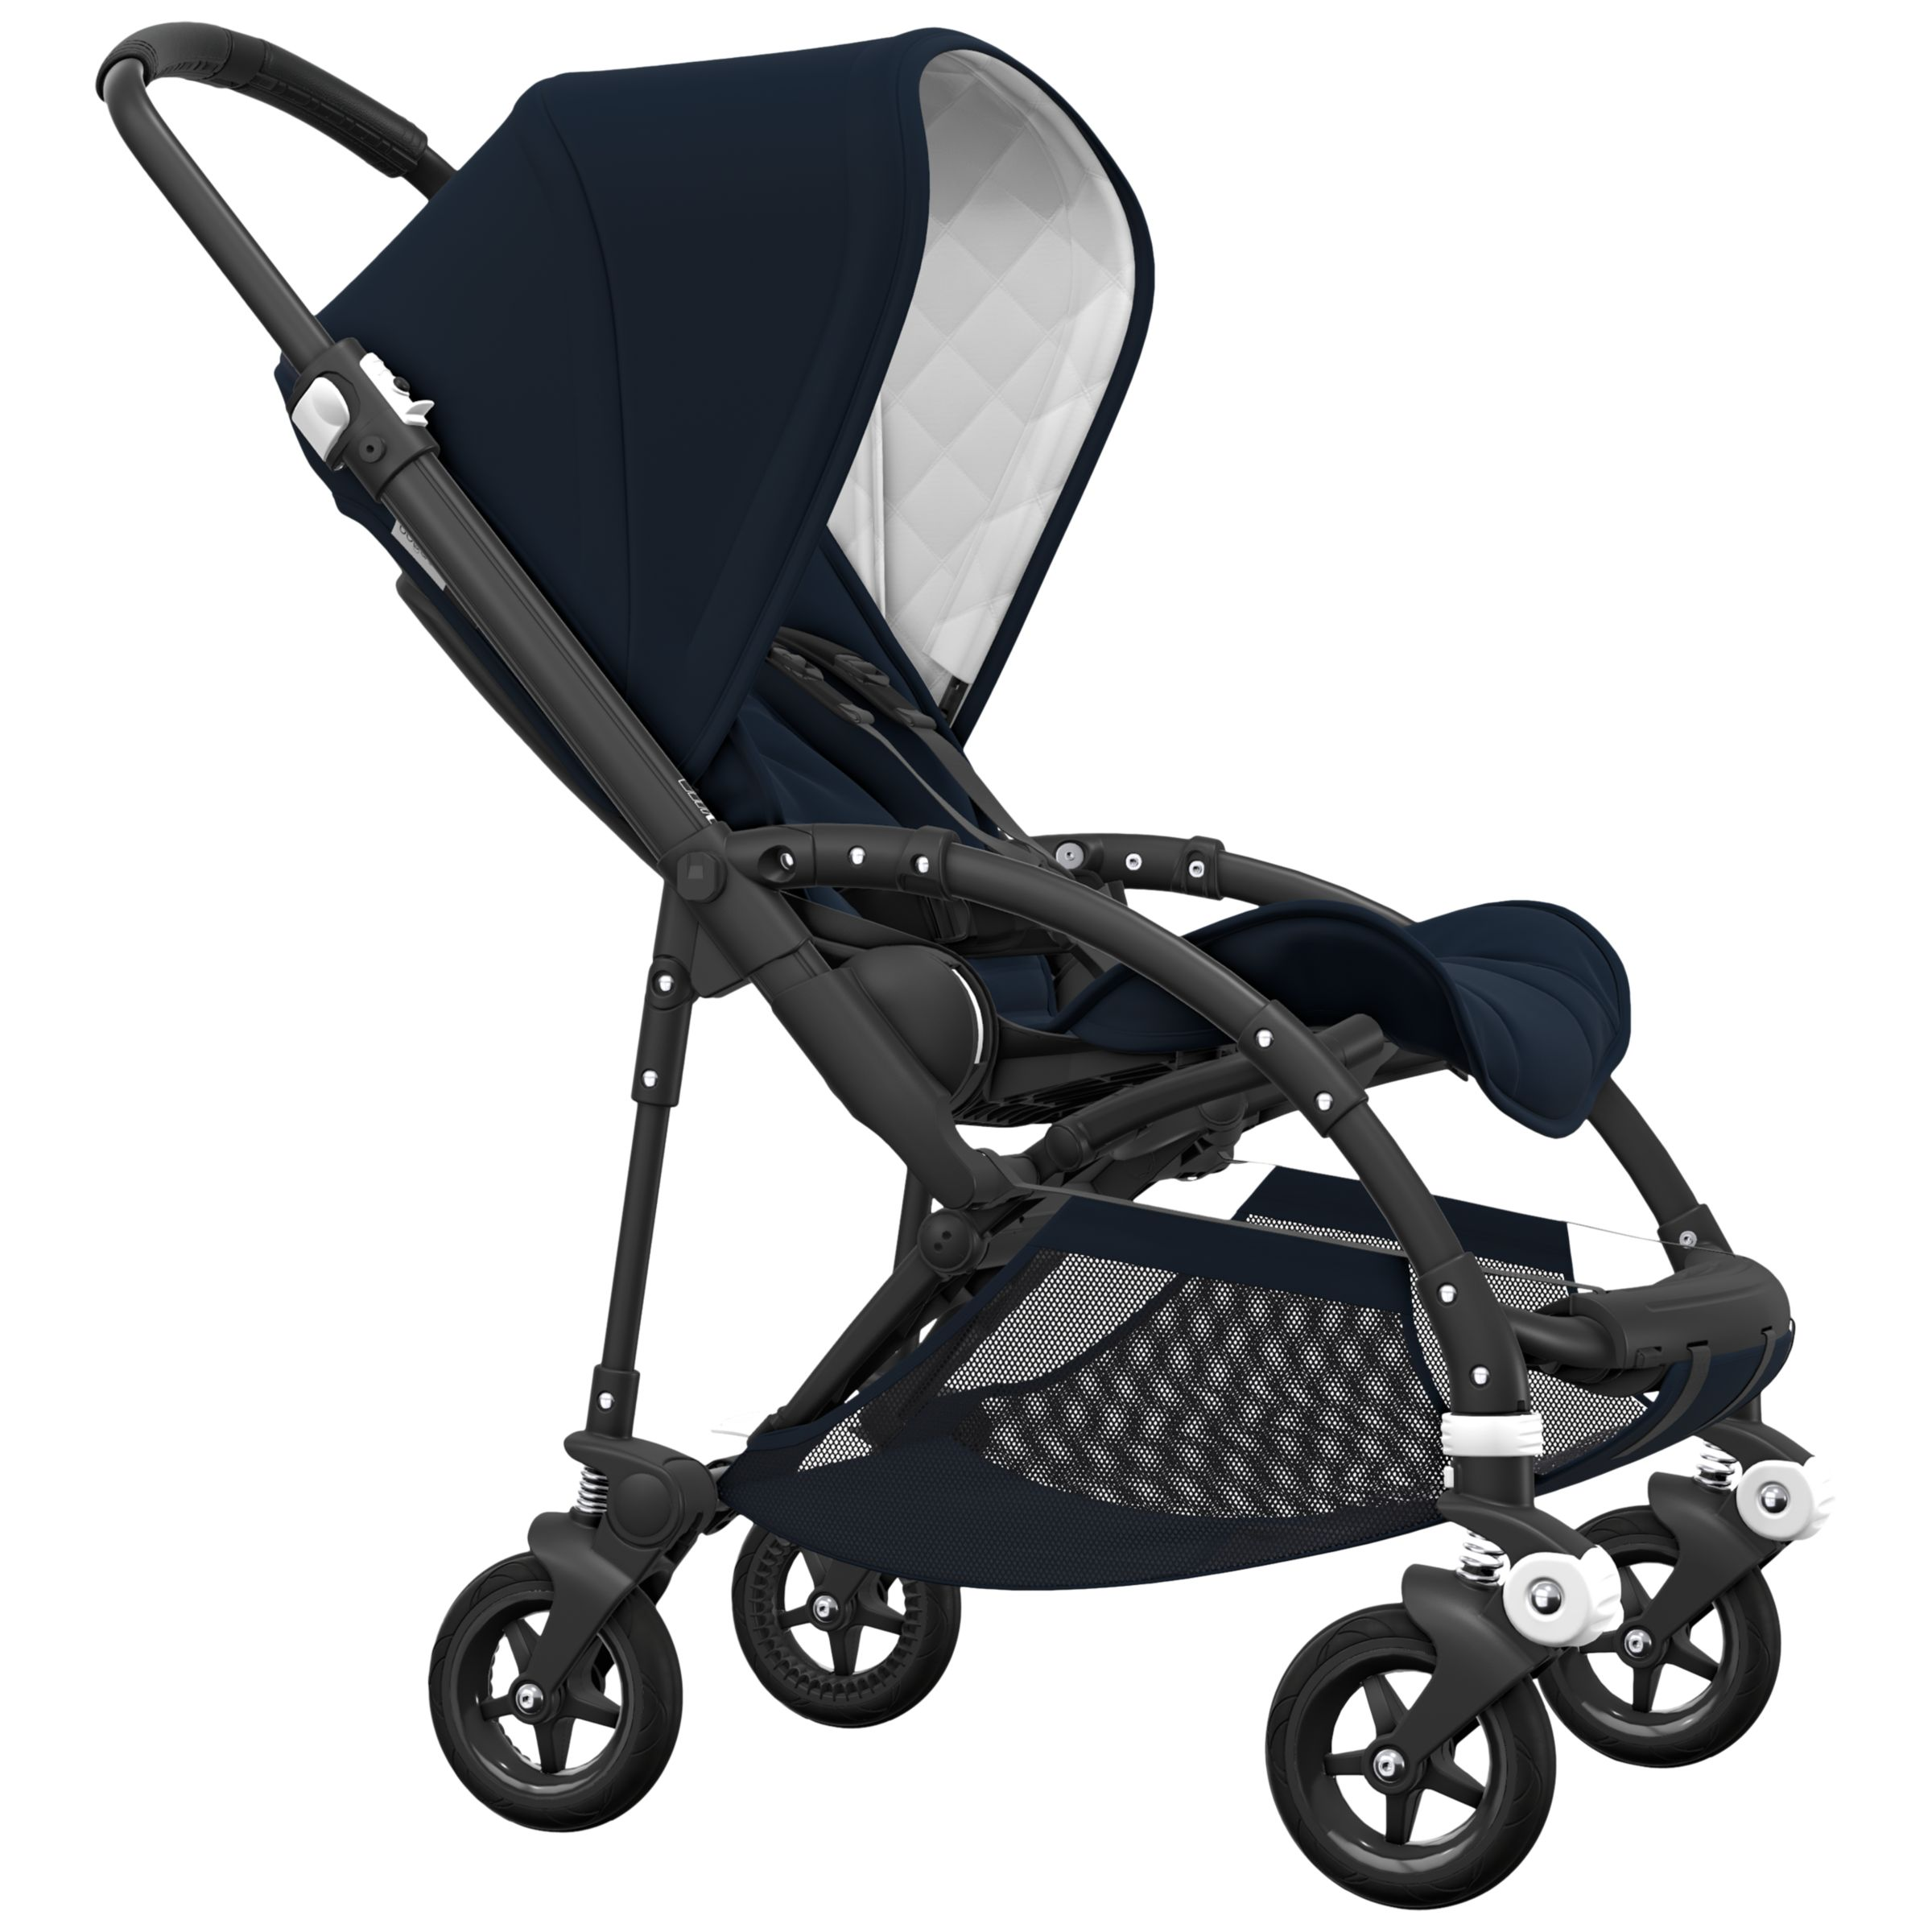 Bugaboo Bugaboo Bee 5 Classic Pushchair, Dark Navy/Black